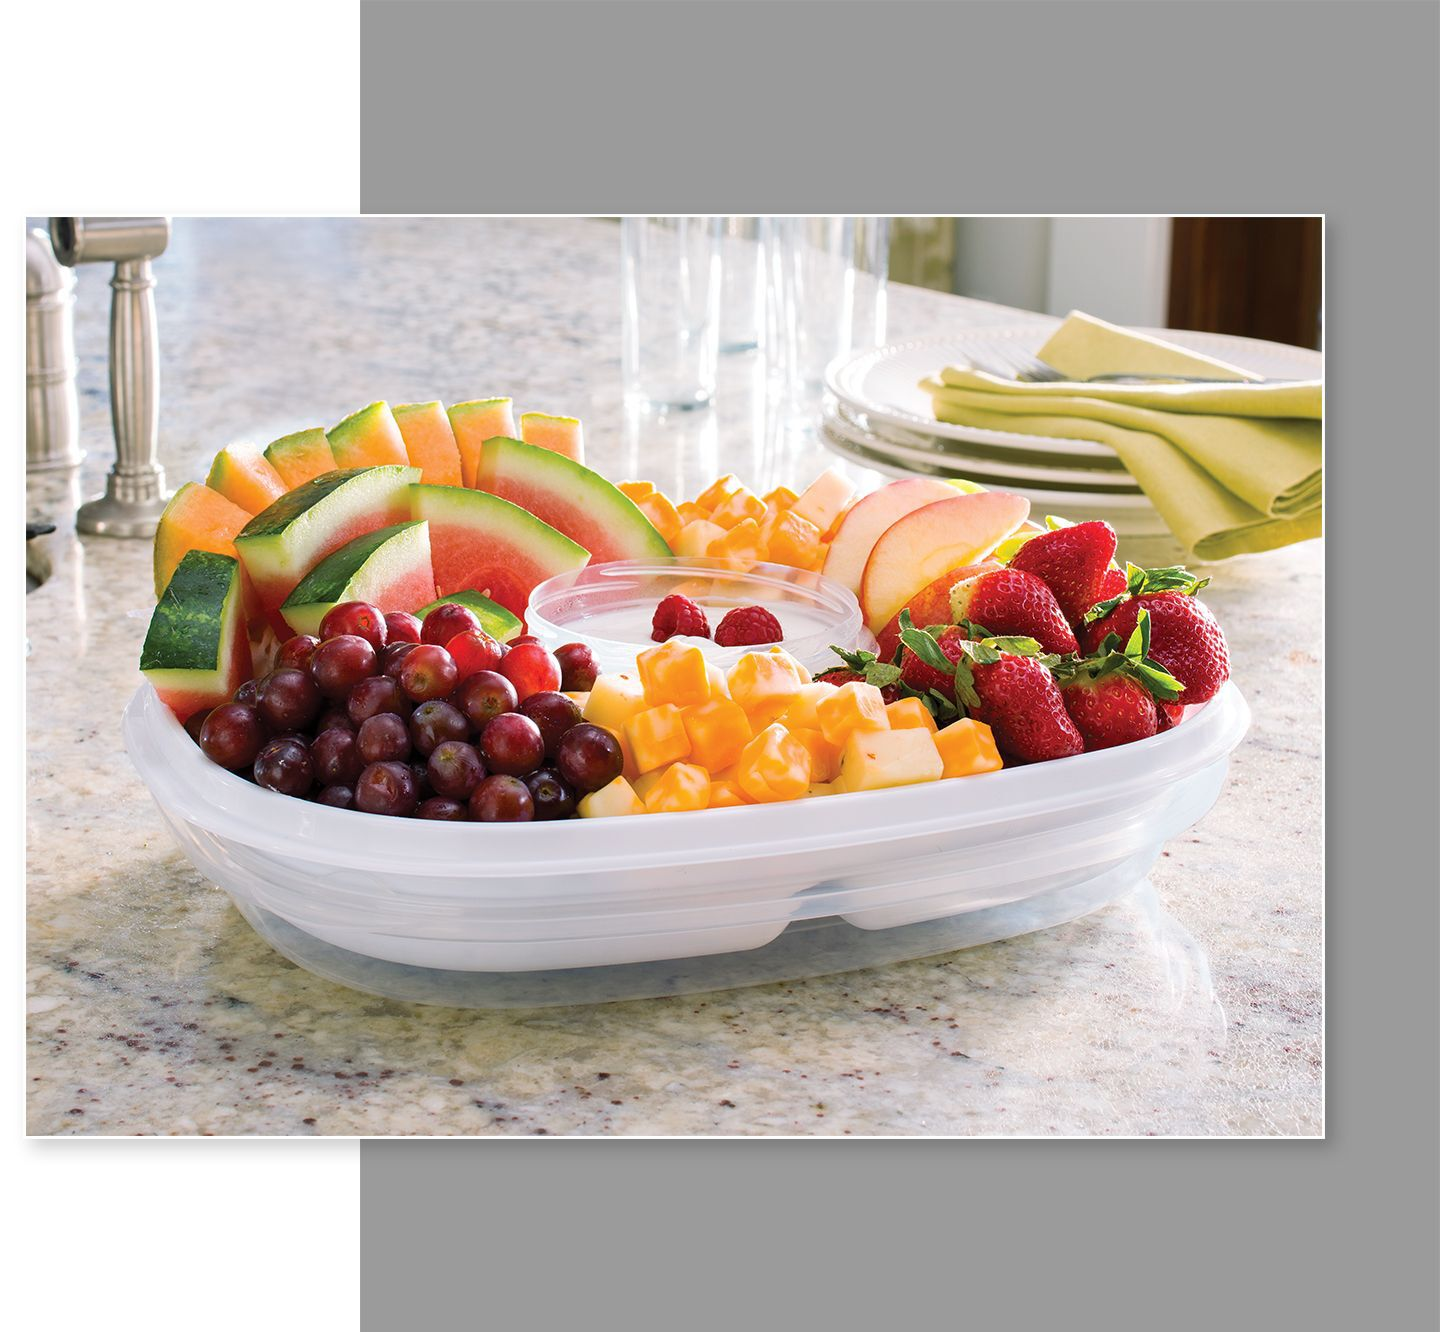 Rubbermaid party platter serveware fruit and dip